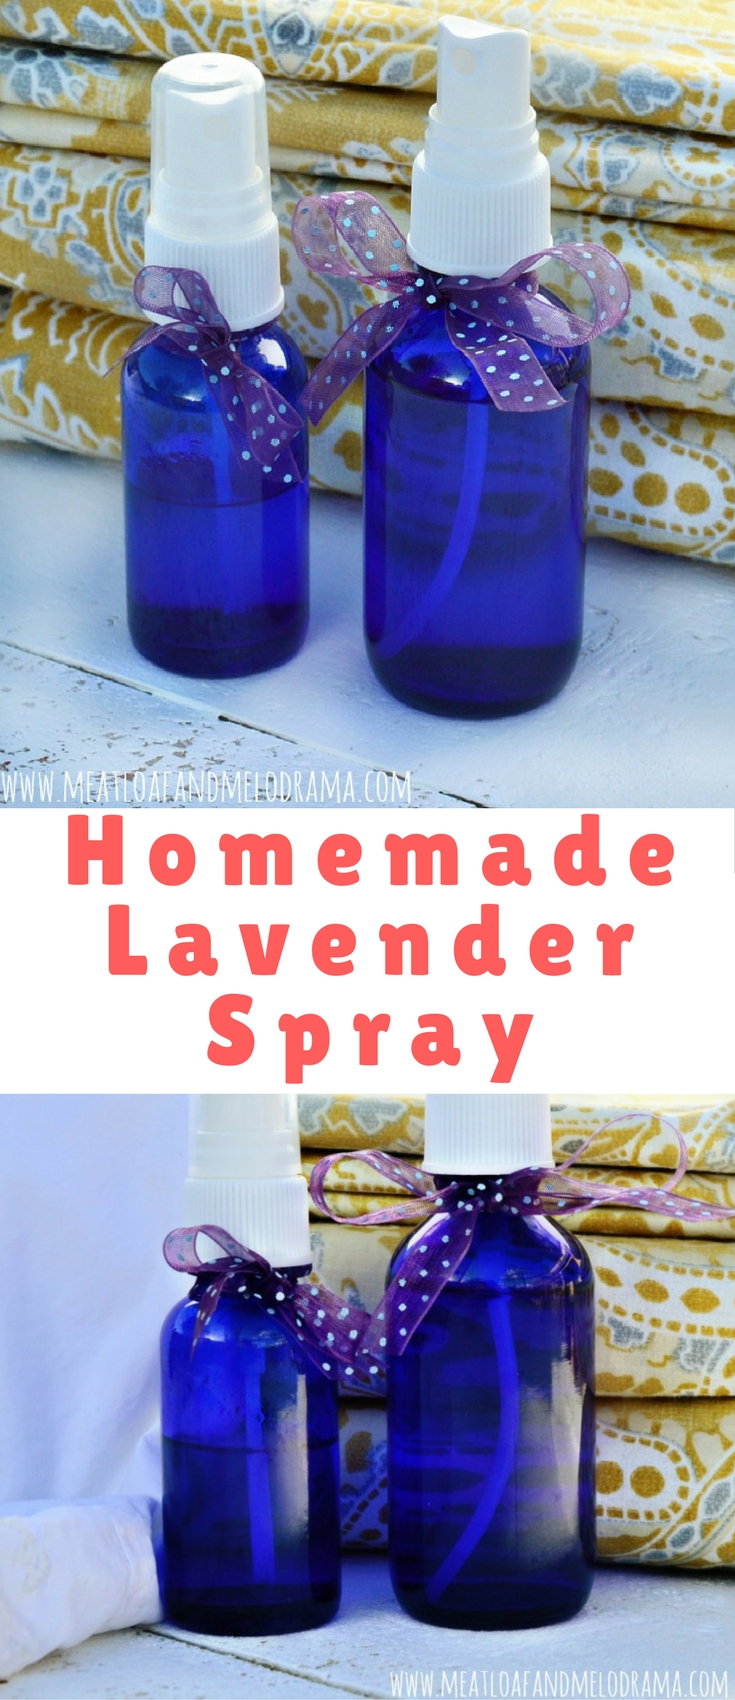 I've come to love this homemade lavender spray so much, that I use it for clothes, towels and just about everything else.